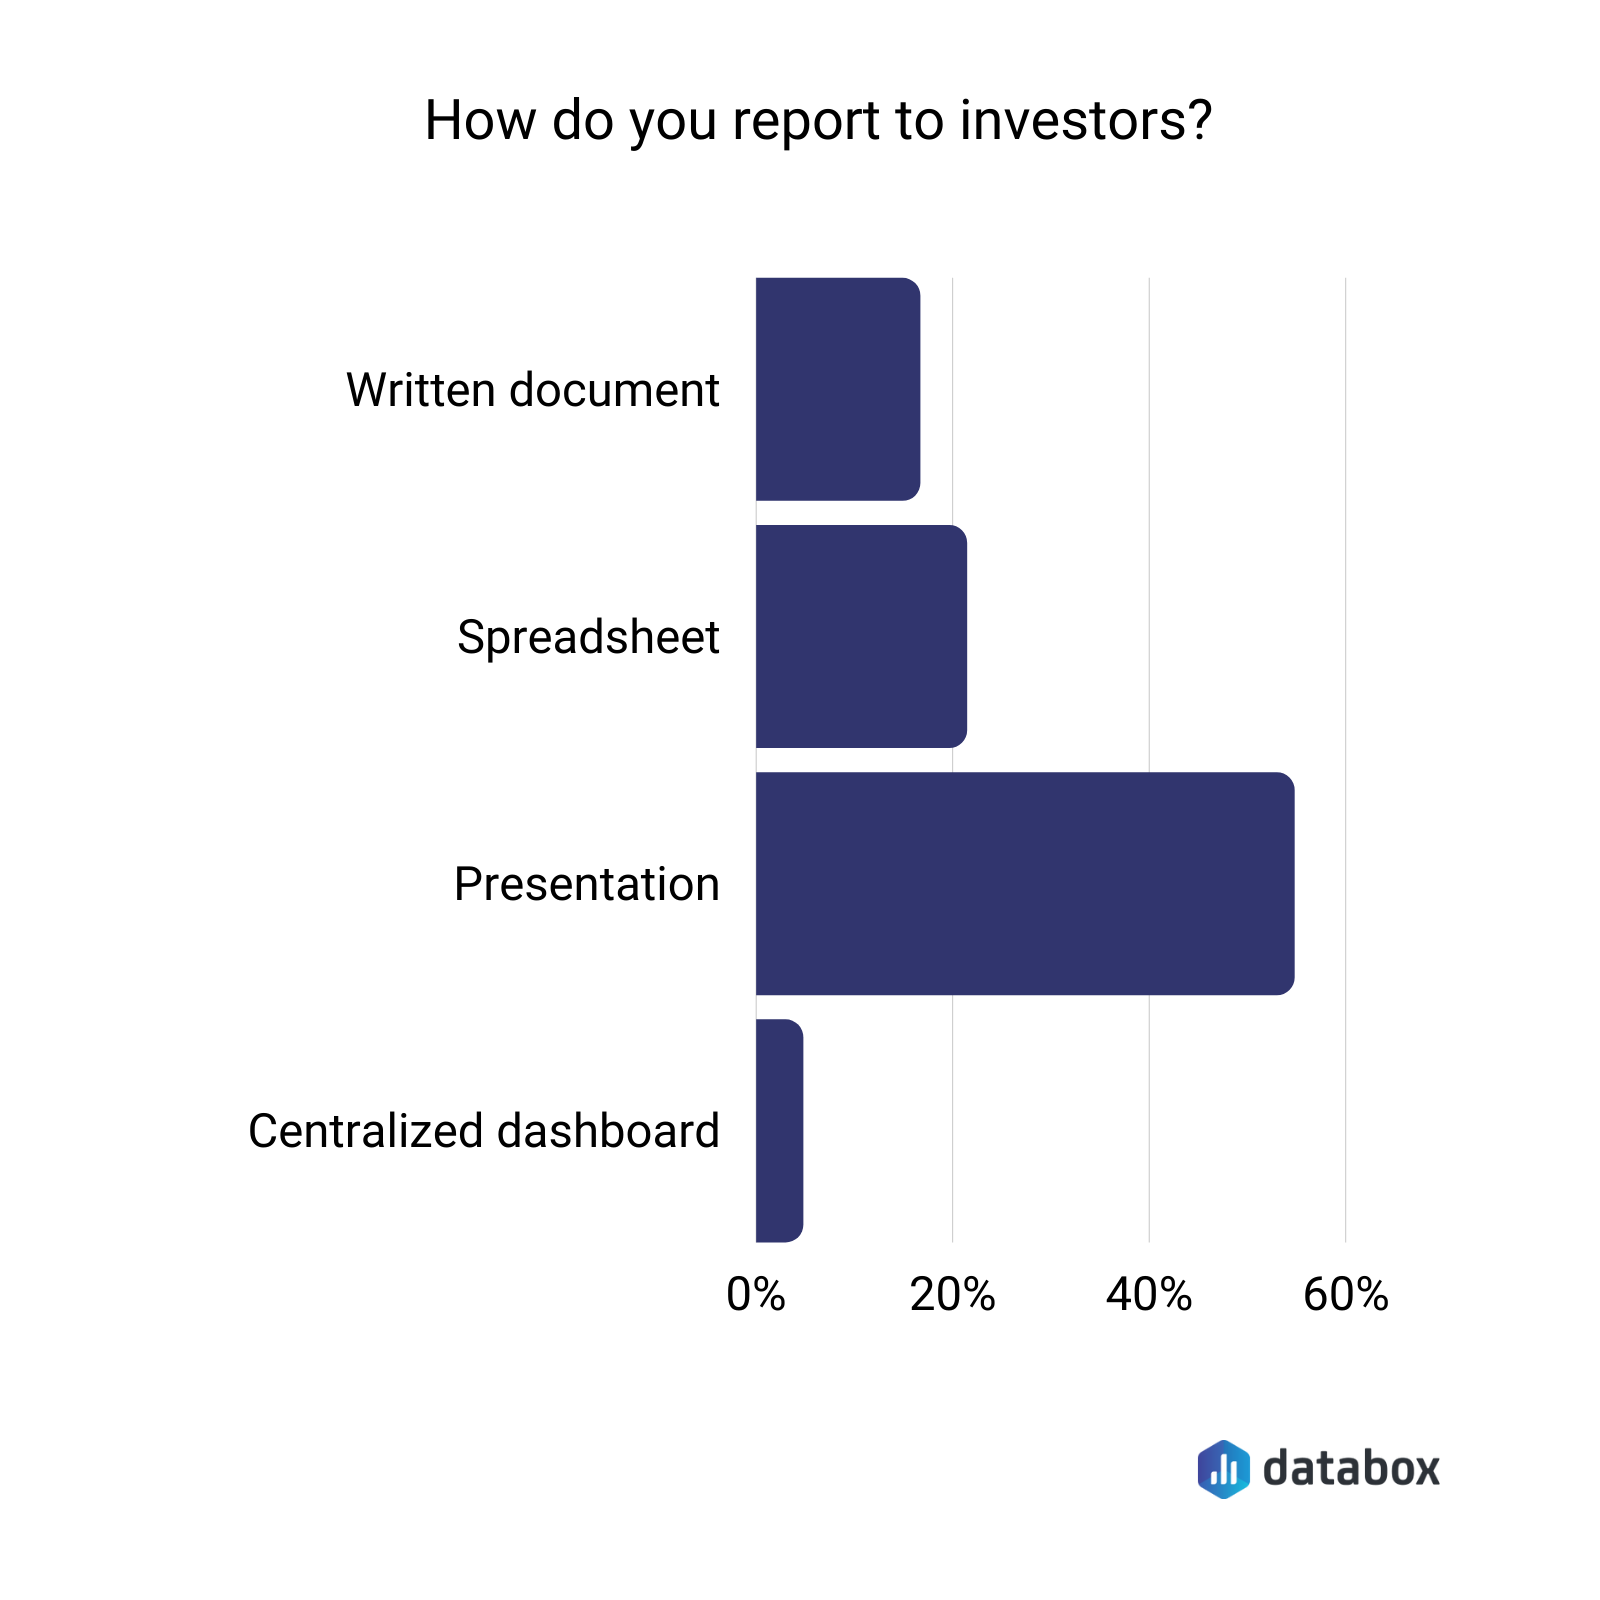 how do you report to investors